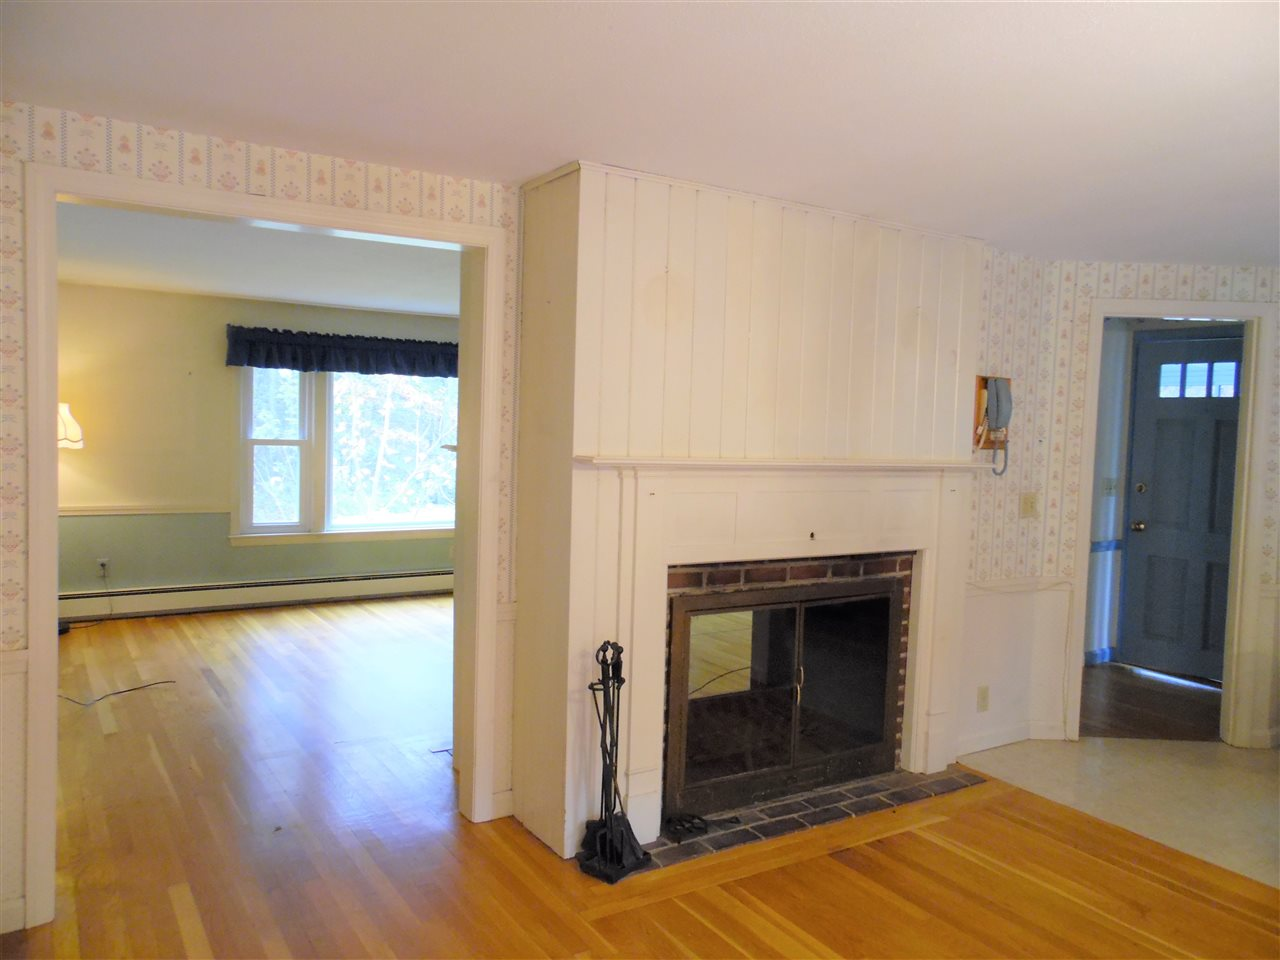 6 n meadow rd amherst nh 03031 mls 4666358 movoto com